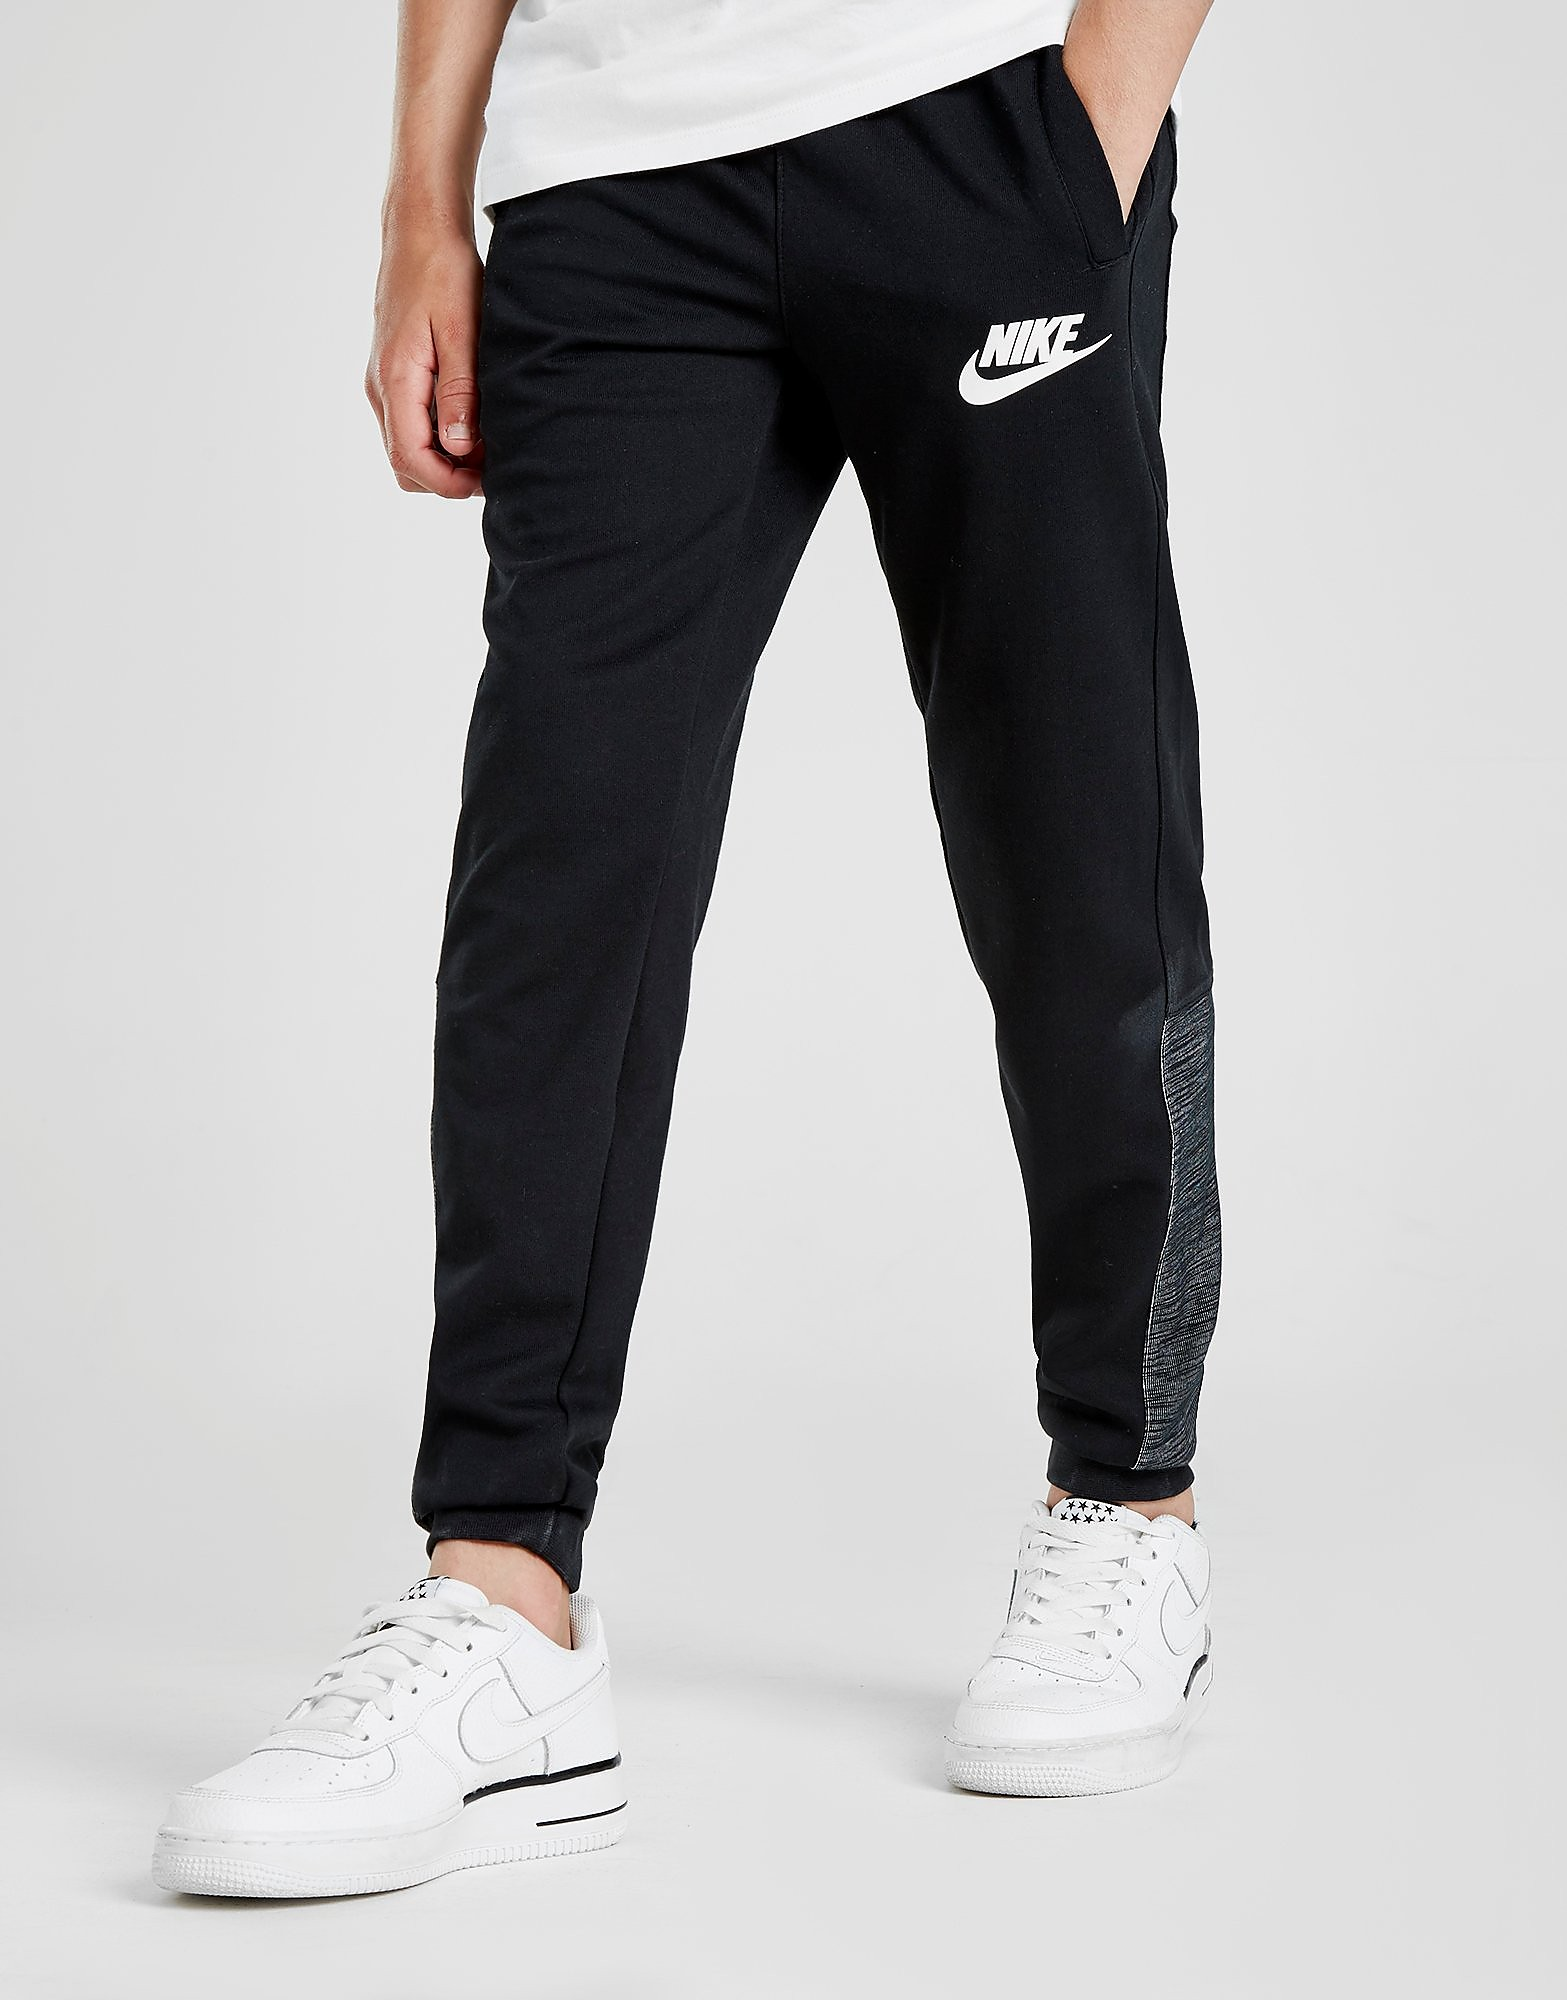 Nike Advance Fleece Pants Junior - Zwart - Kind